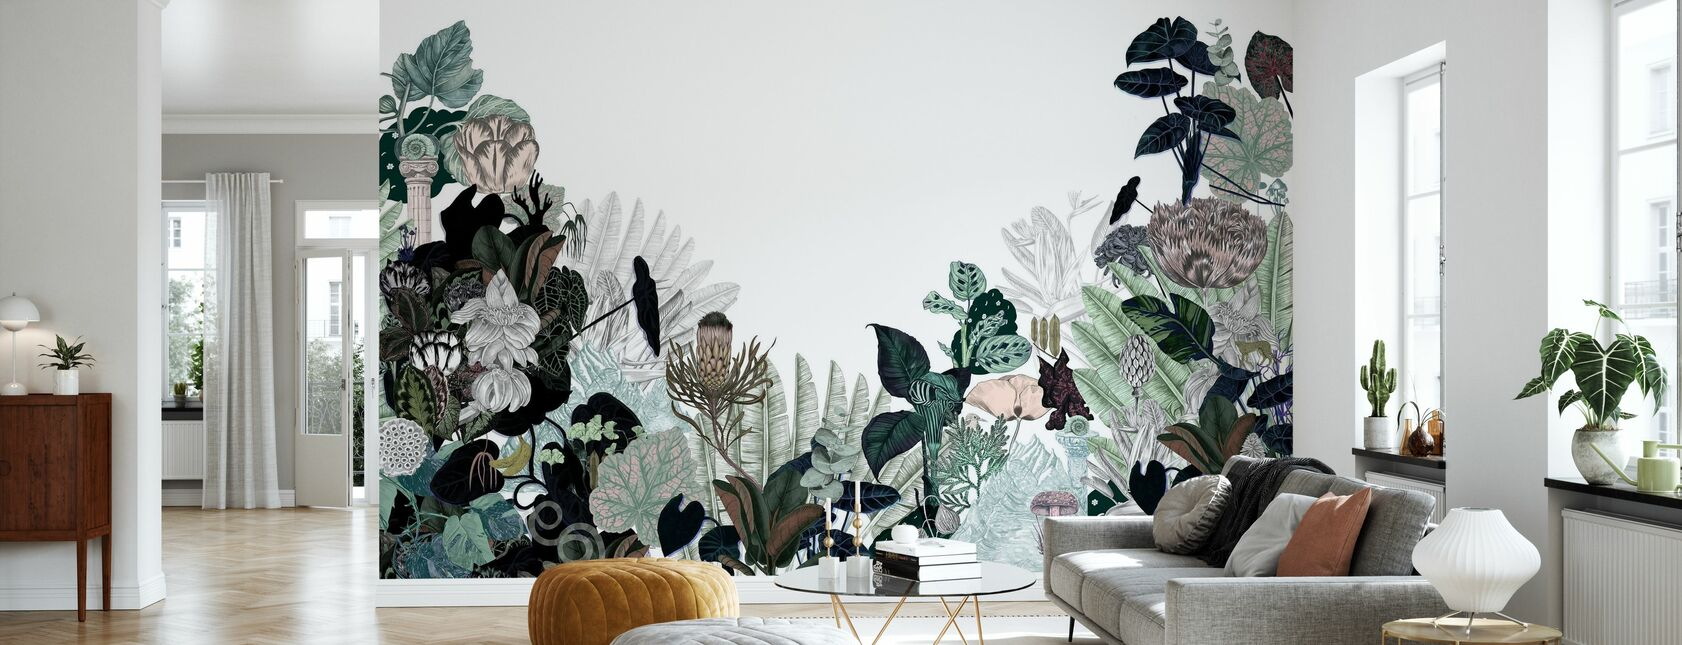 Paradise Lost - Wallpaper - Living Room